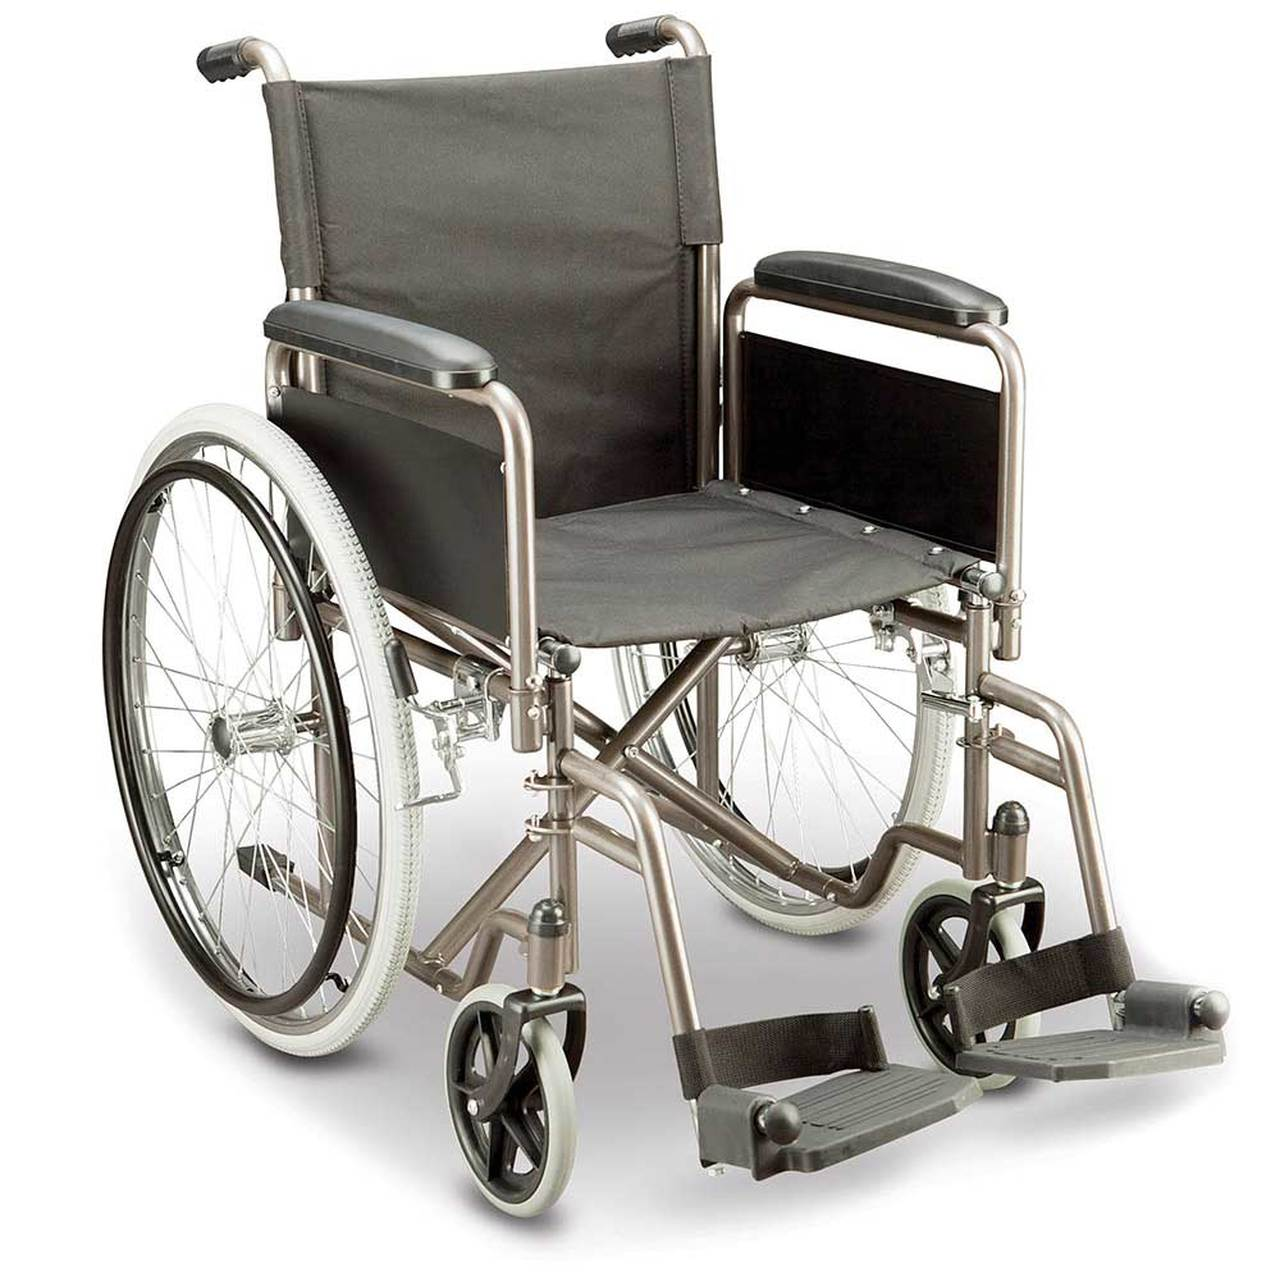 Why am I so happy? - How about you?-wheelchair_ajm_classic_mate__95085-1533604296-jpg